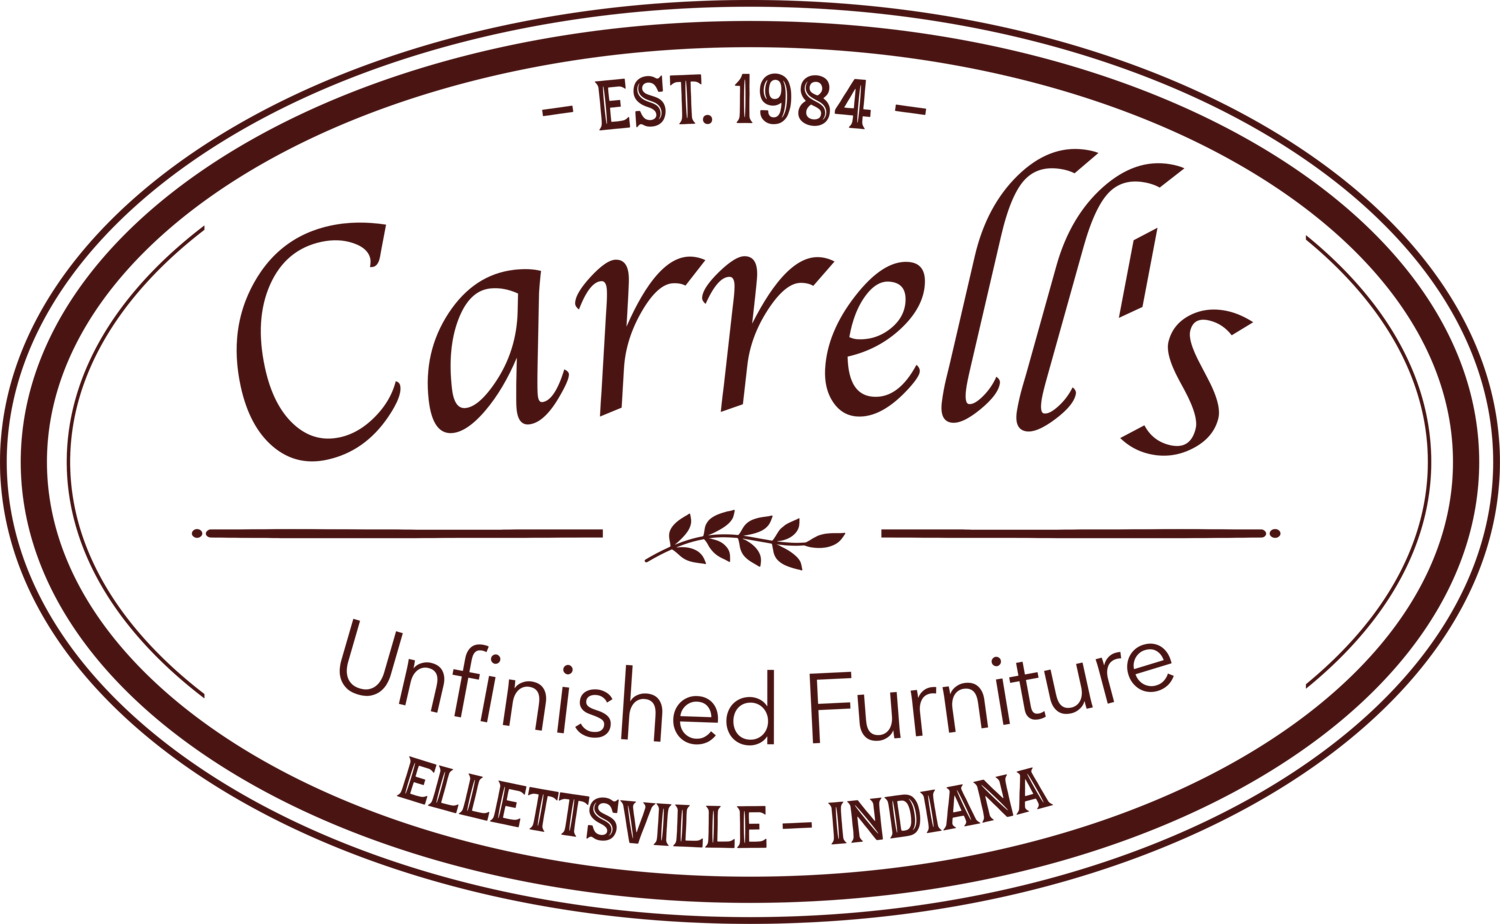 Carrell's Unfinished Furniture